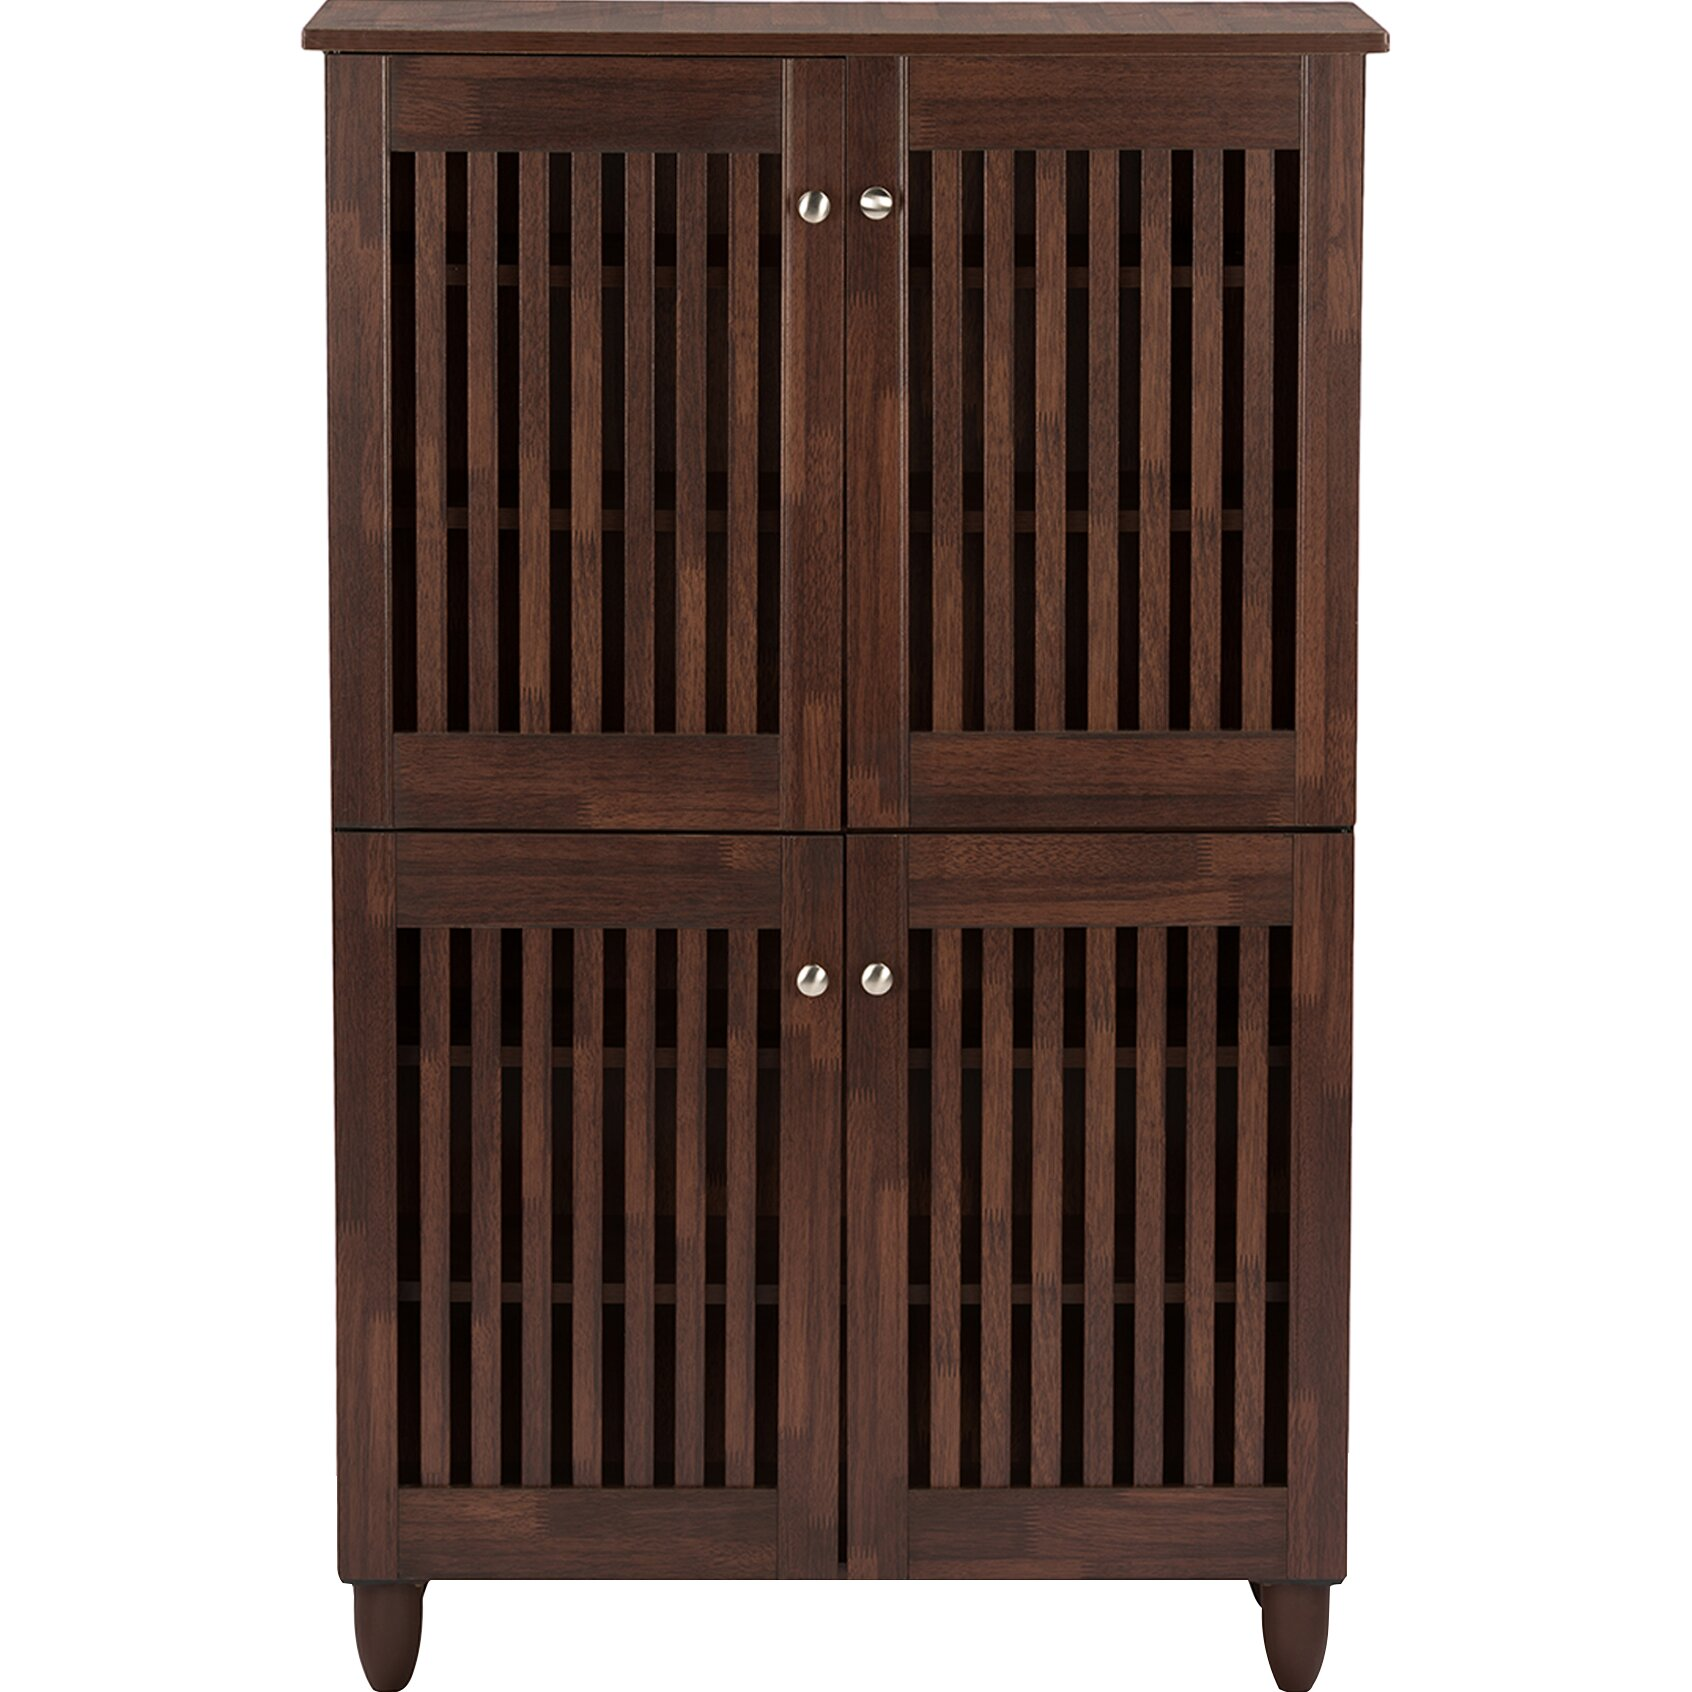 18 Storage Cabinet Darby Home Co 18 Pair Oak Shoe Storage Cabinet Reviews Wayfair